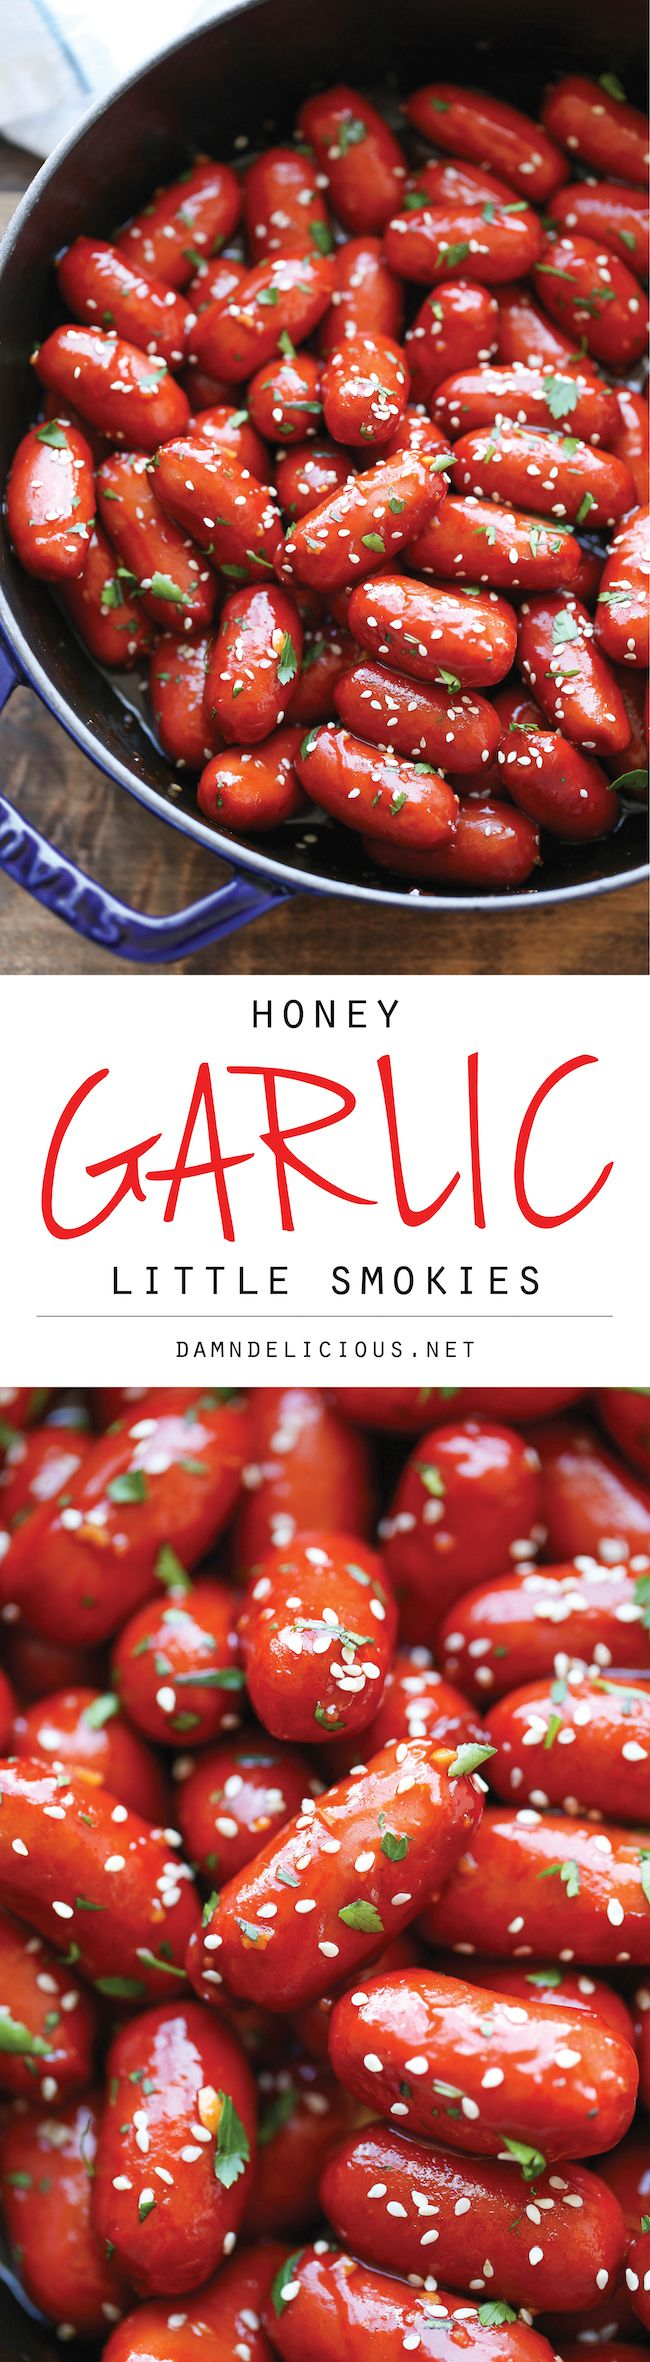 Honey Garlic Little Smokies - Easy peasy, fool-proof cocktail sausages that are amazingly sweet and savory, and of course, completely irresistible!